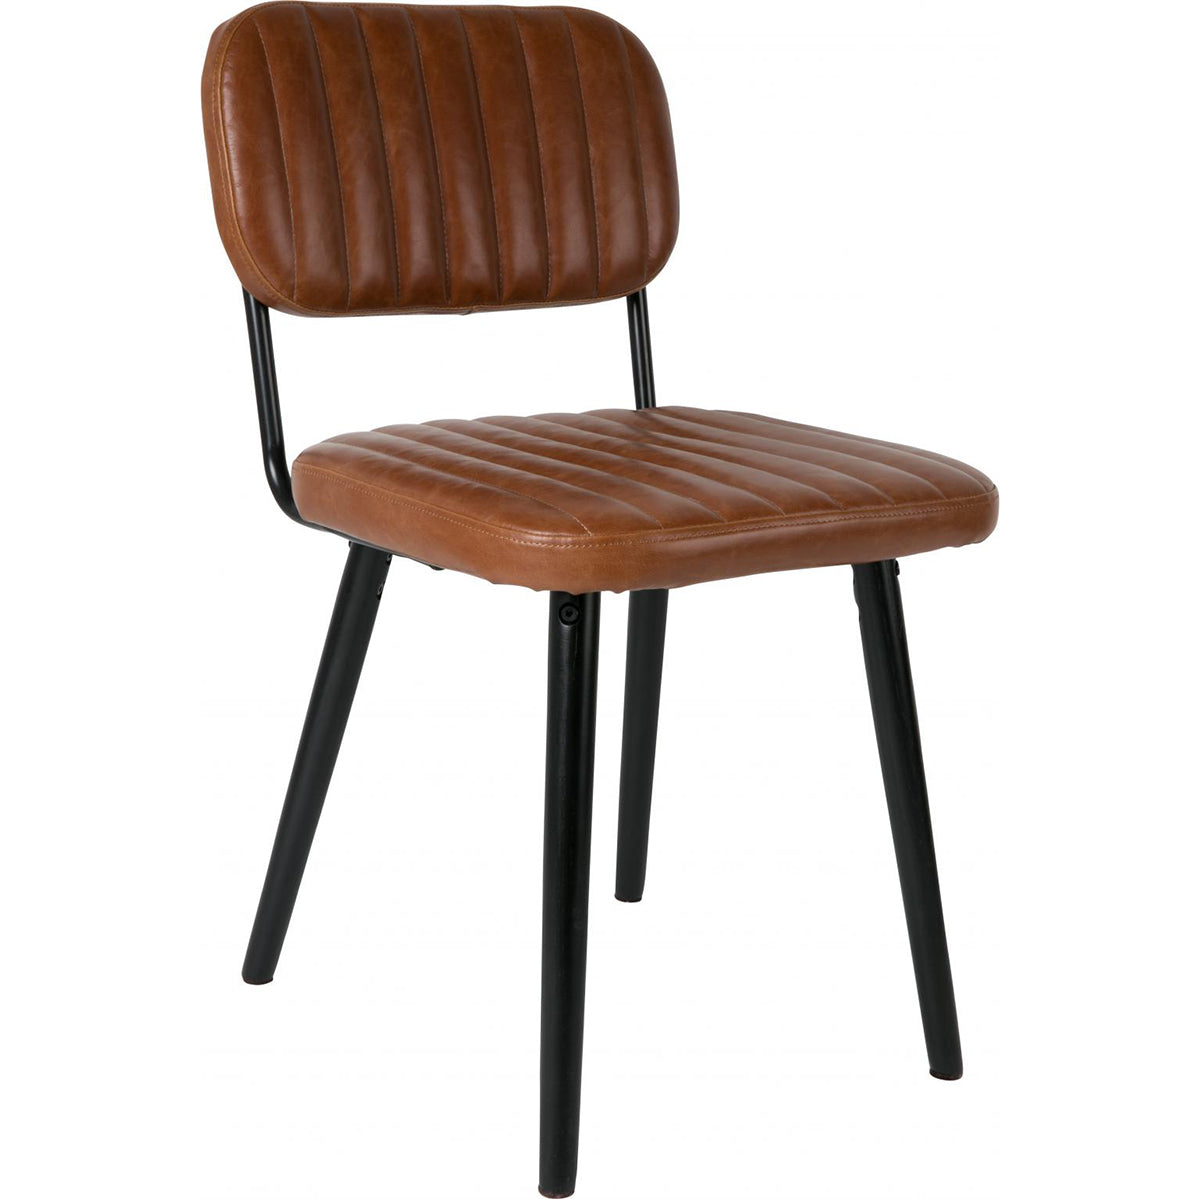 Jake PU Leather Chair